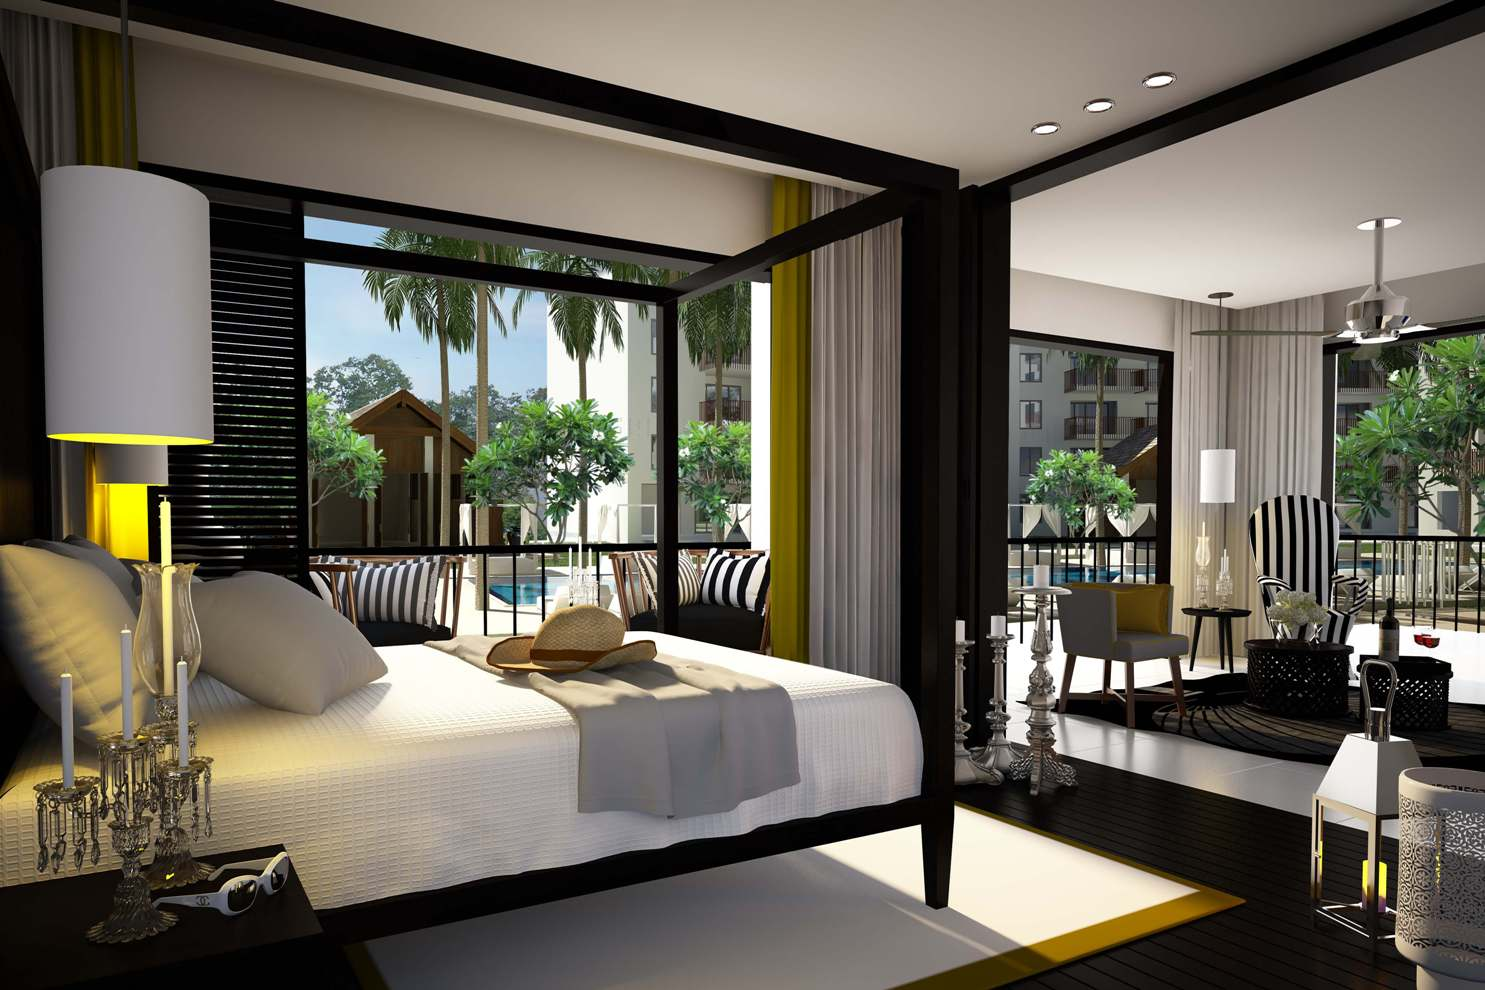 Modern-Natural-Master-Bedroom-Design-Ideas-Open-Living-Space